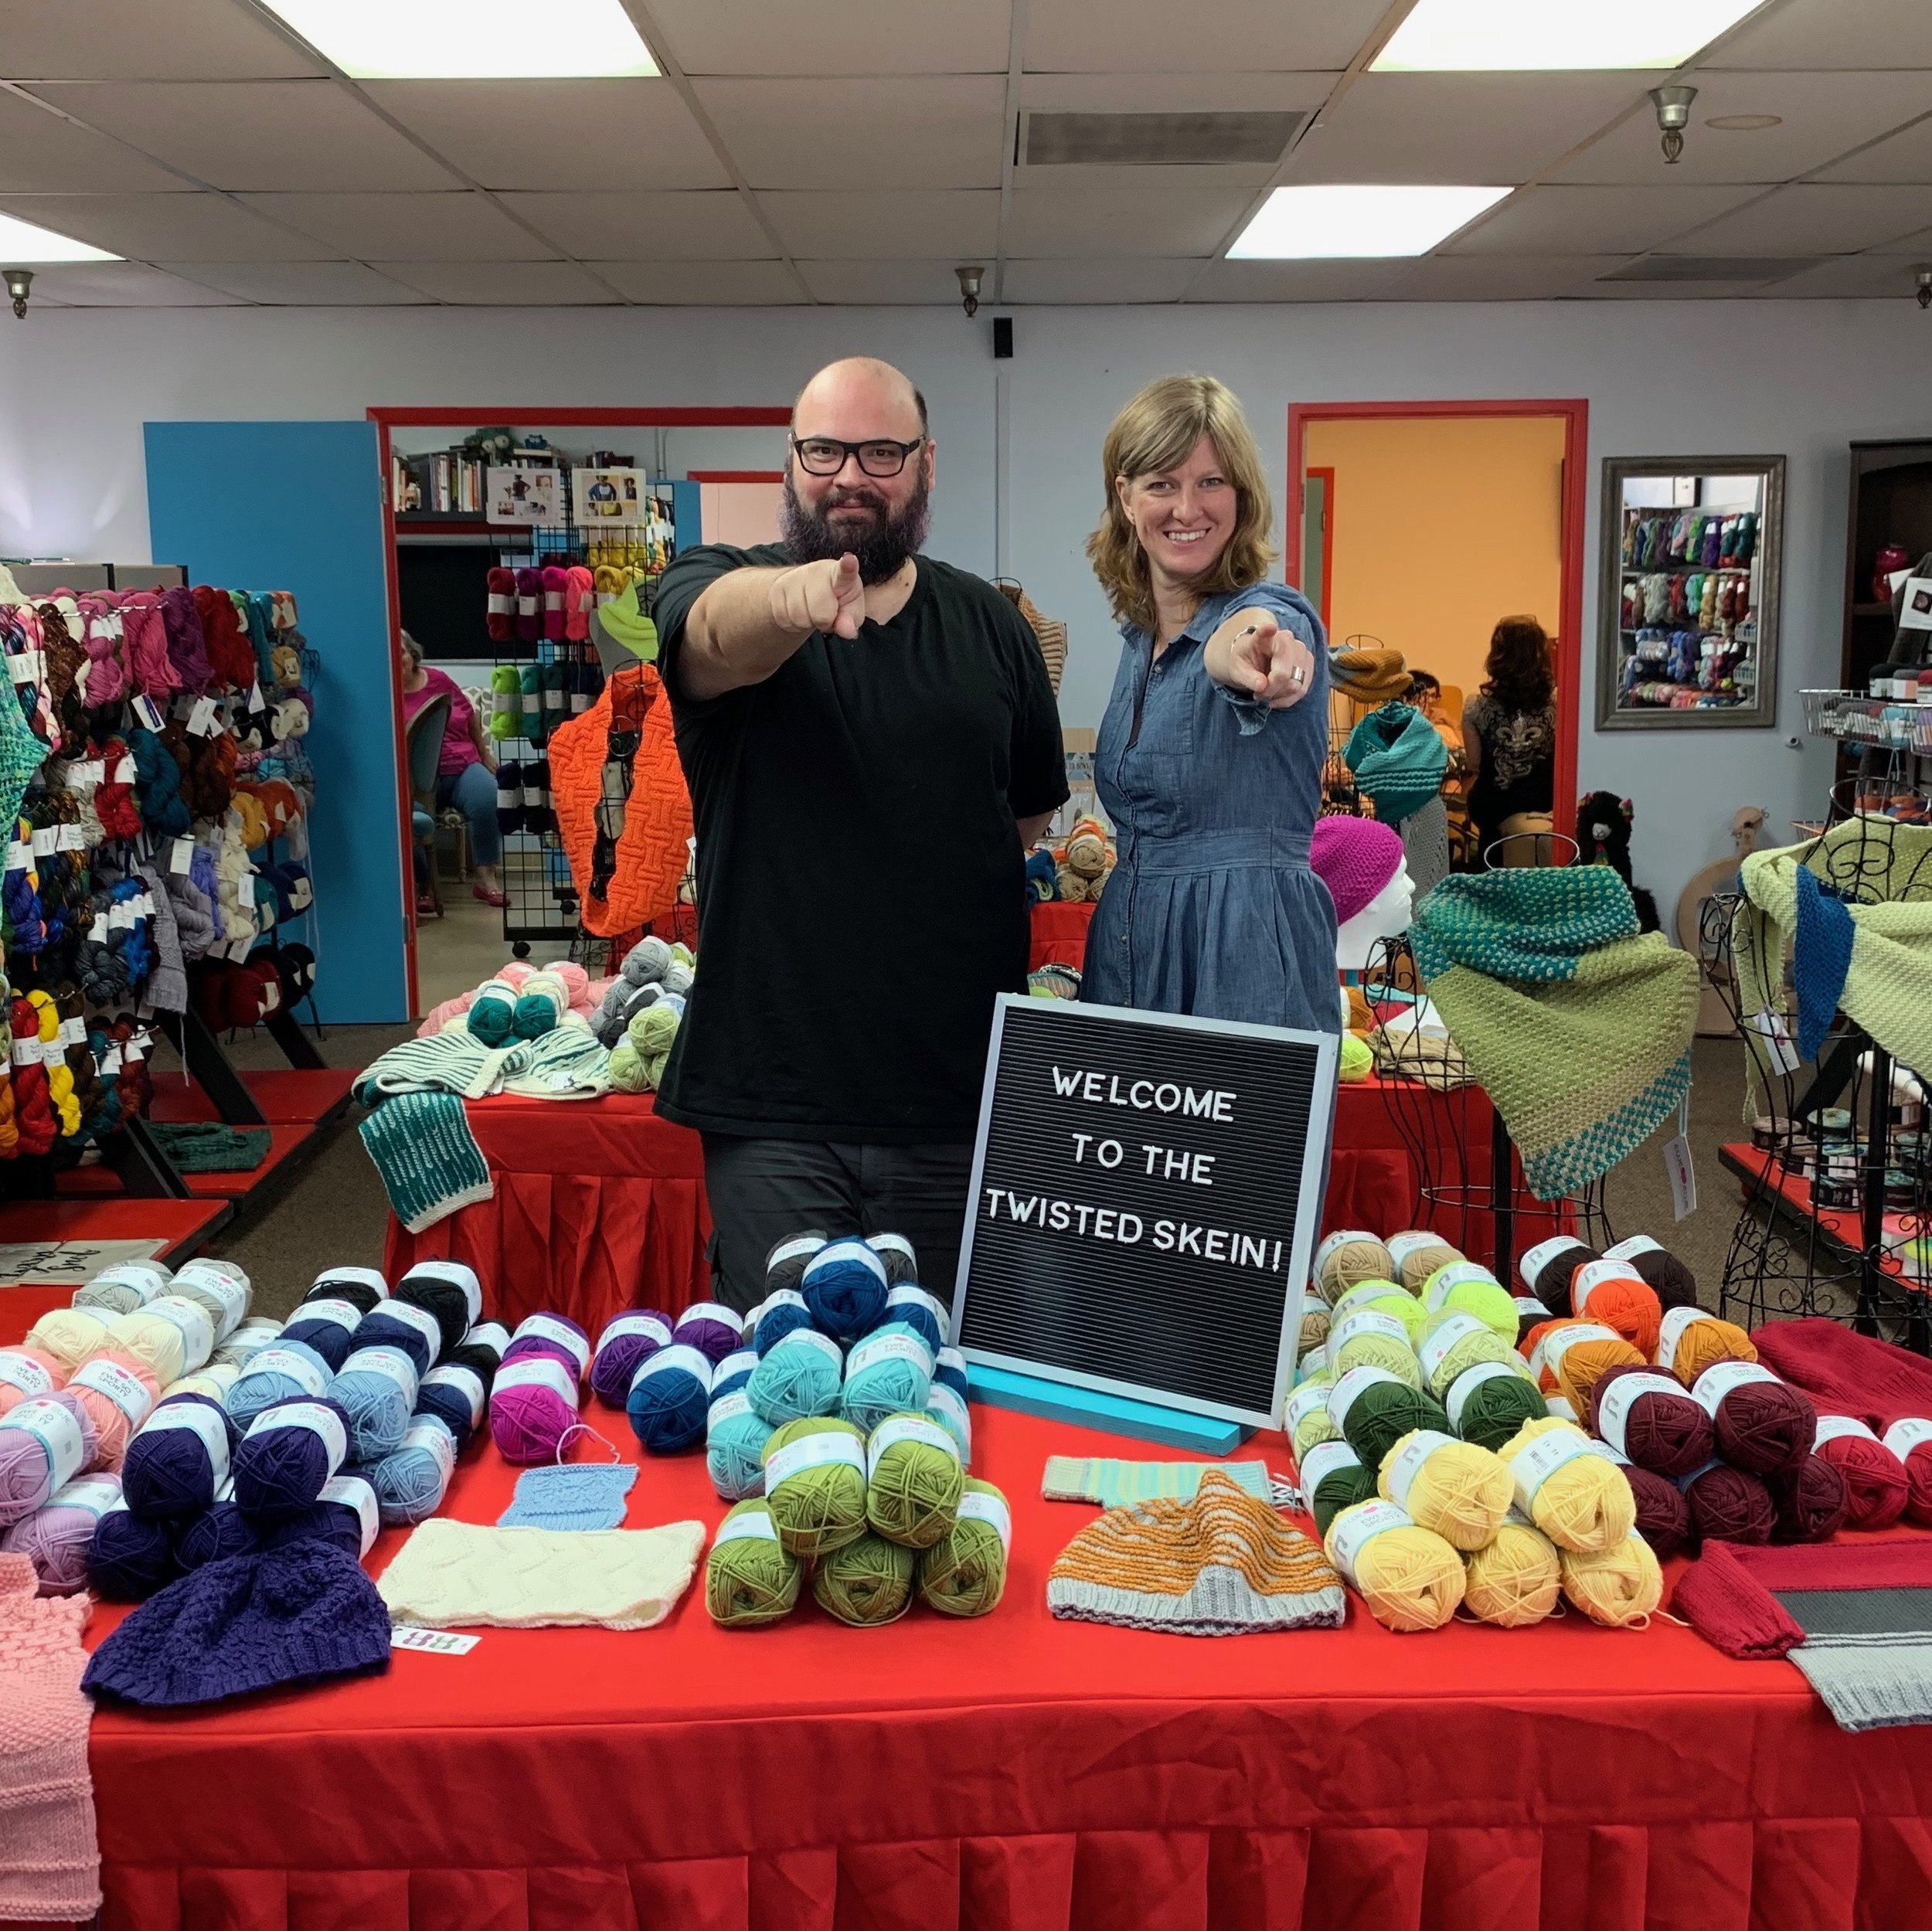 Ron and Heather at The Twisted Skein